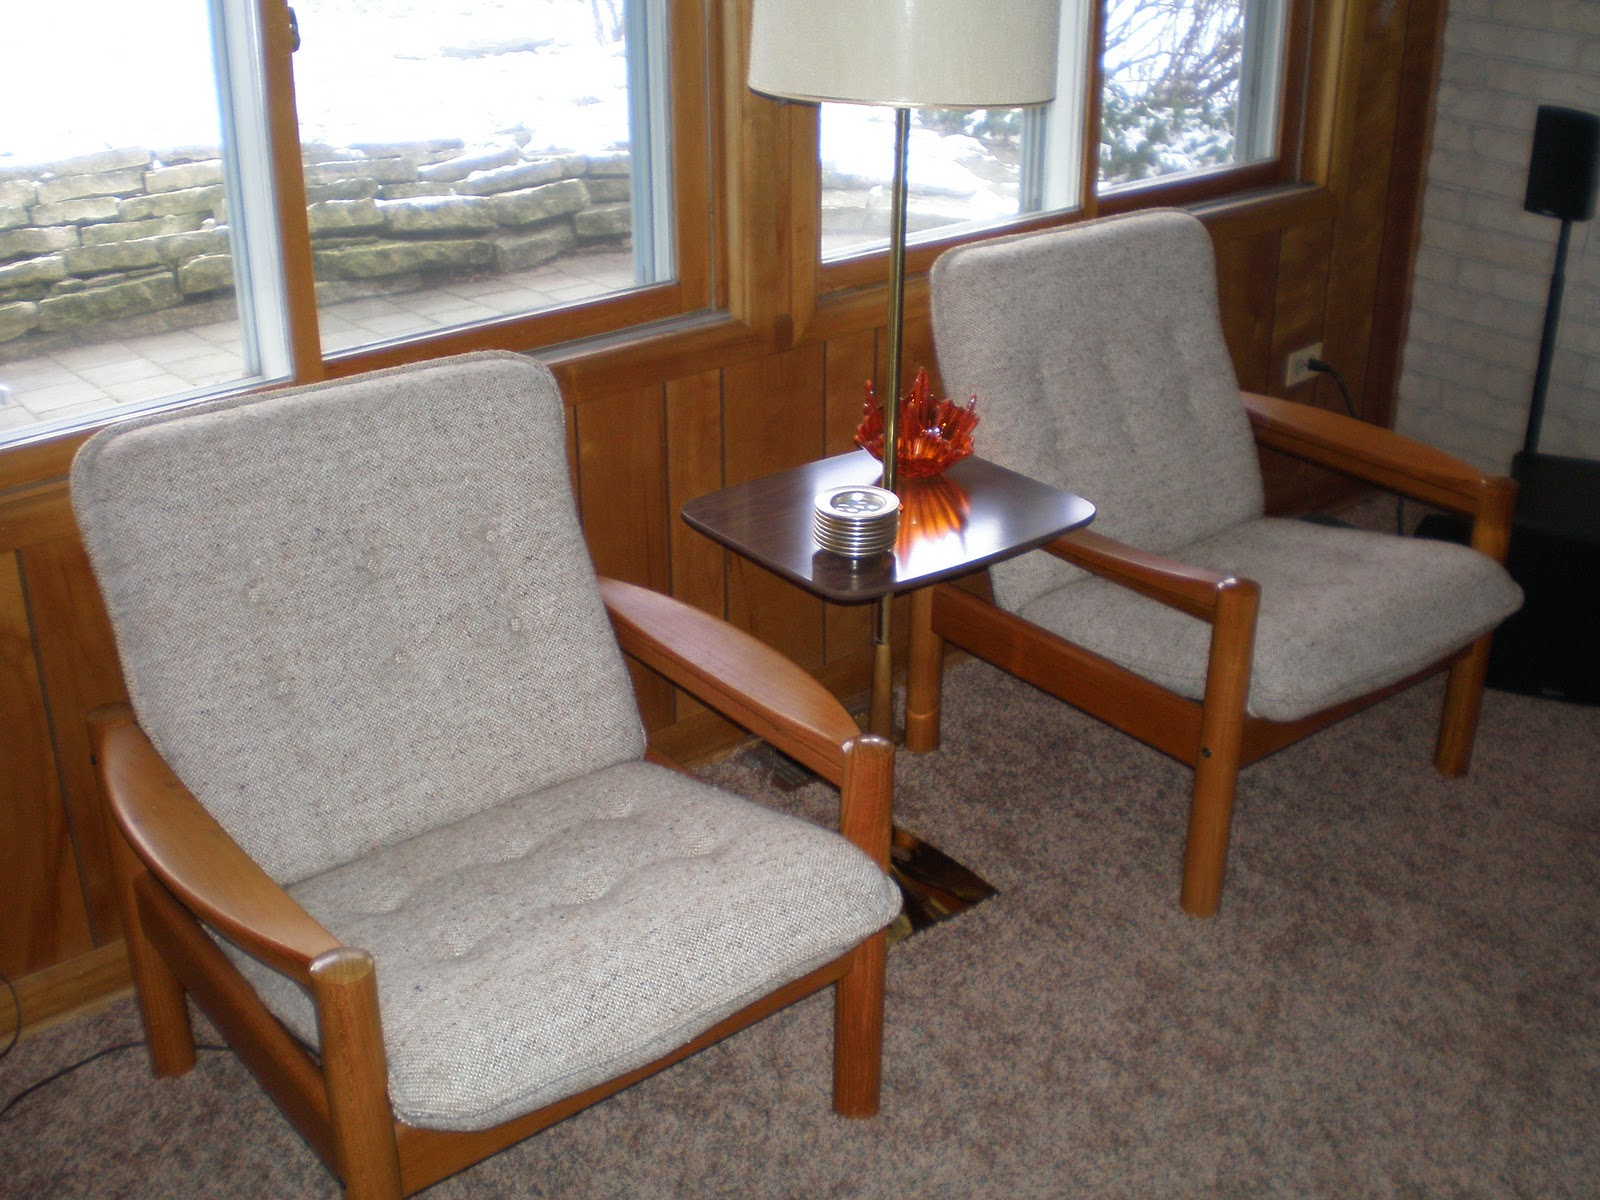 ... Pair of Danish Modern Lounge Chairs by Domino Mobler - SOLD